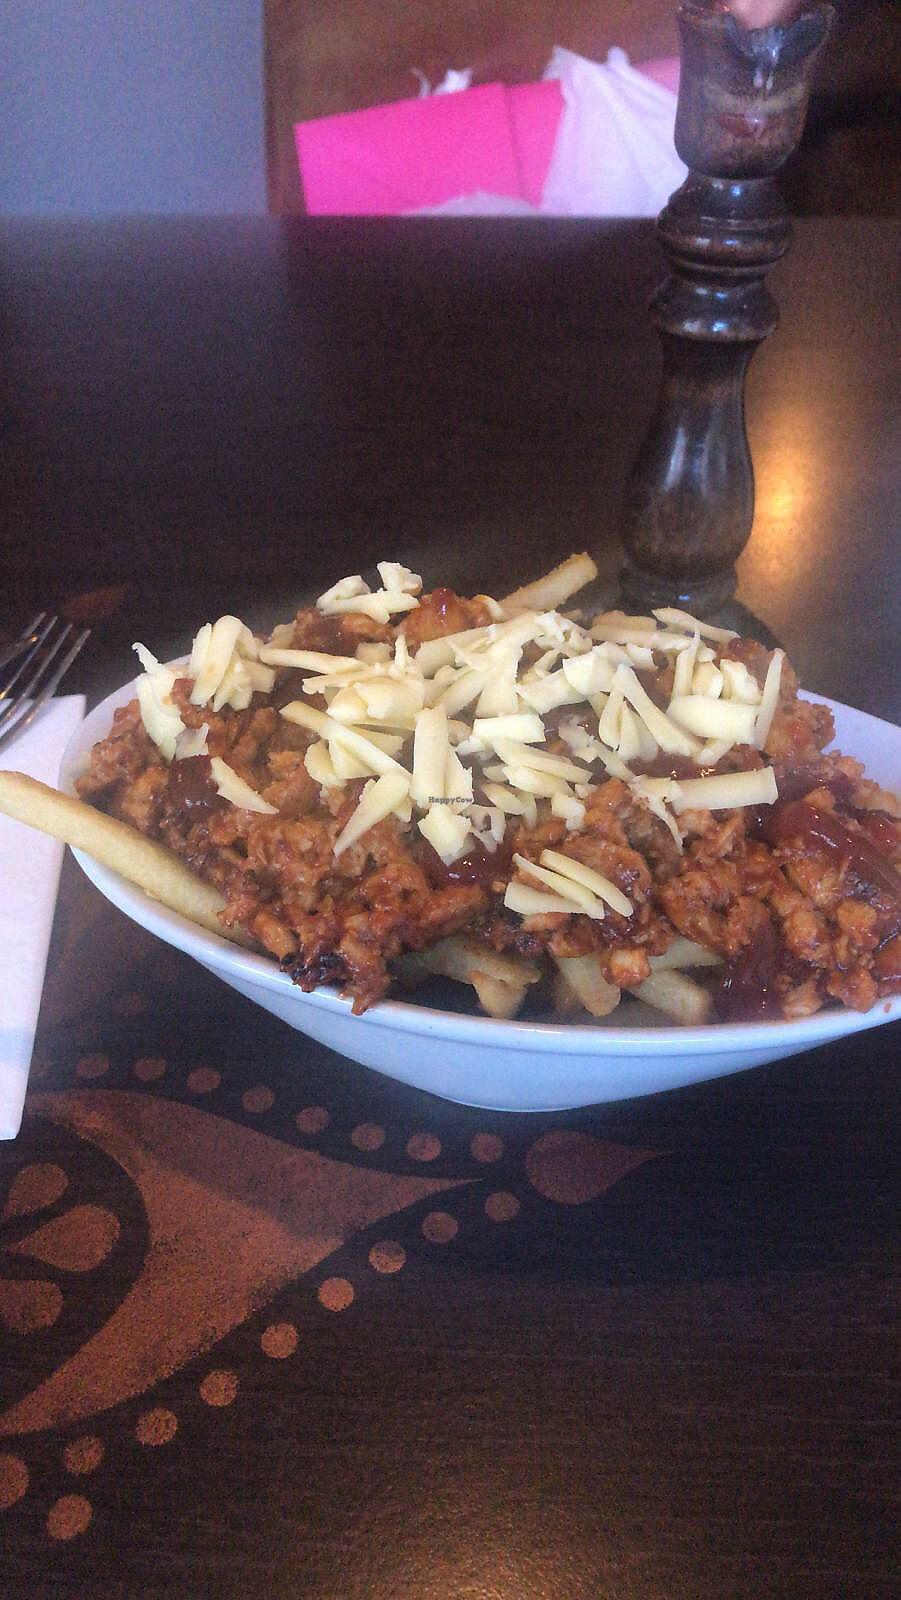 "Photo of Phoenix Plant Based Eatery  by <a href=""/members/profile/VickieGerrard"">VickieGerrard</a> <br/>Bbq (faux chicken) loaded fries  <br/> January 18, 2018  - <a href='/contact/abuse/image/107714/348031'>Report</a>"